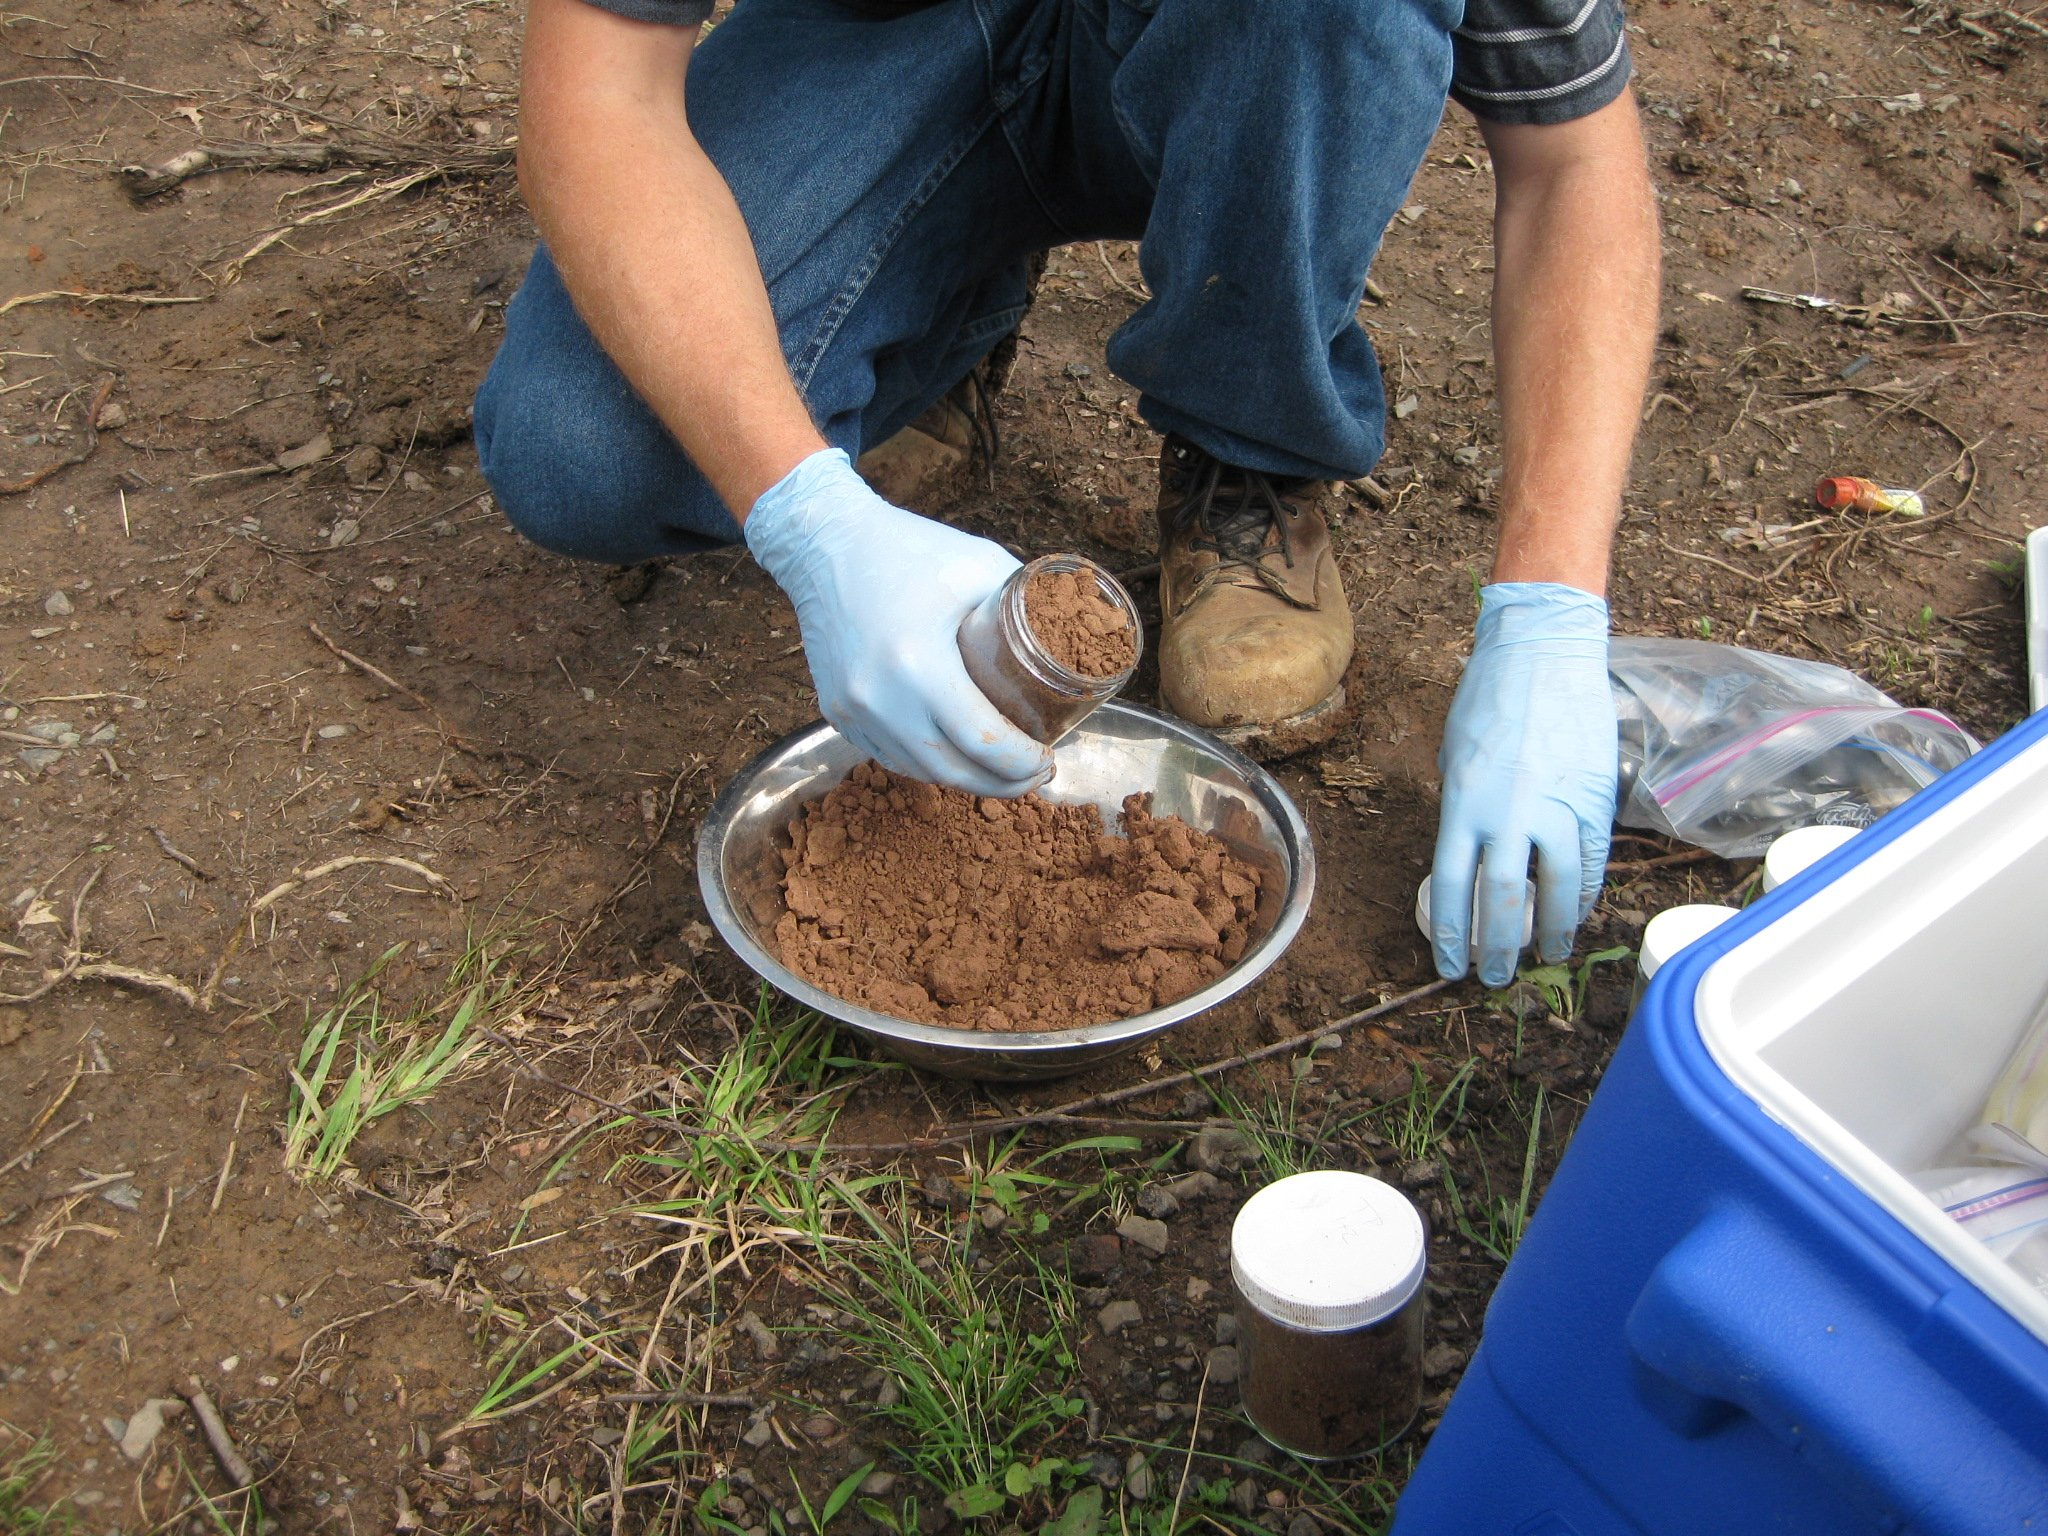 Soil testing must be done before hiring a building contractor